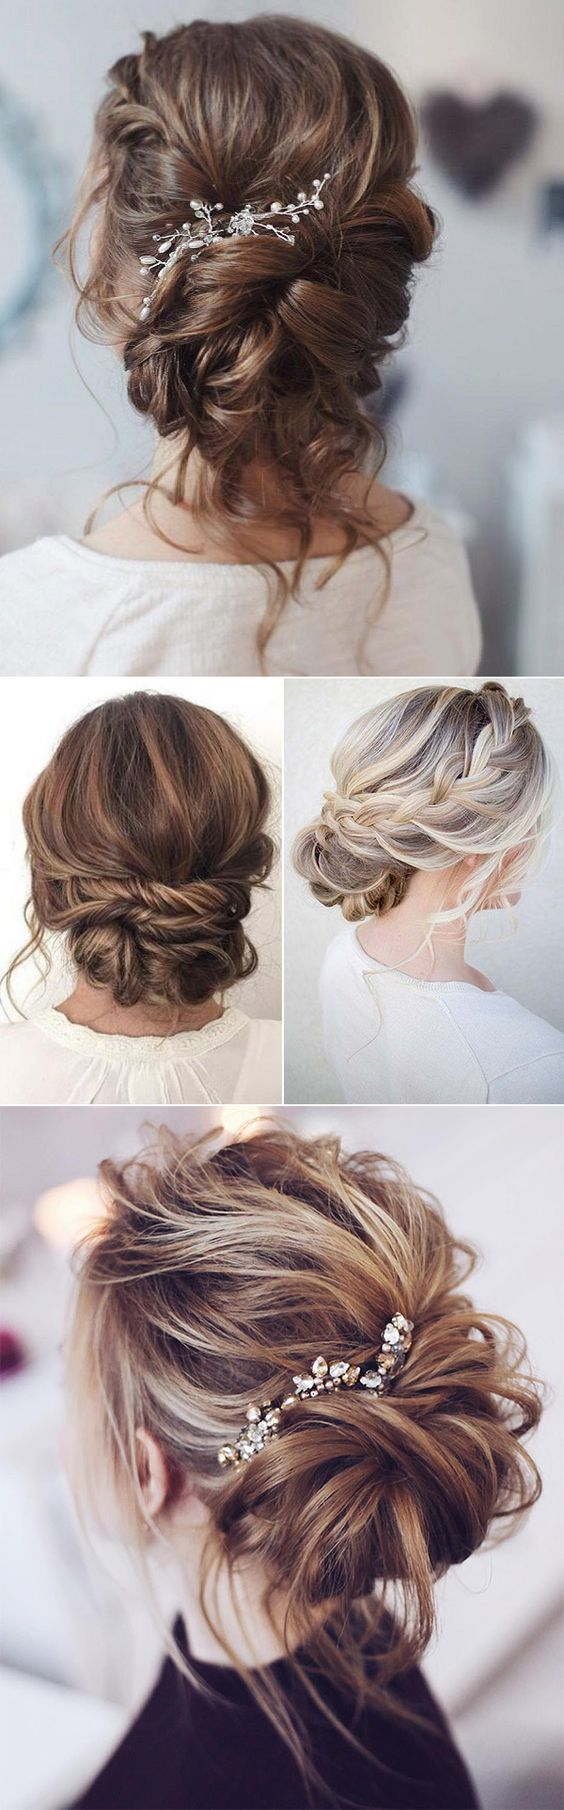 The 16 Most Popular Hairstyles on Pinterest Right Now ...